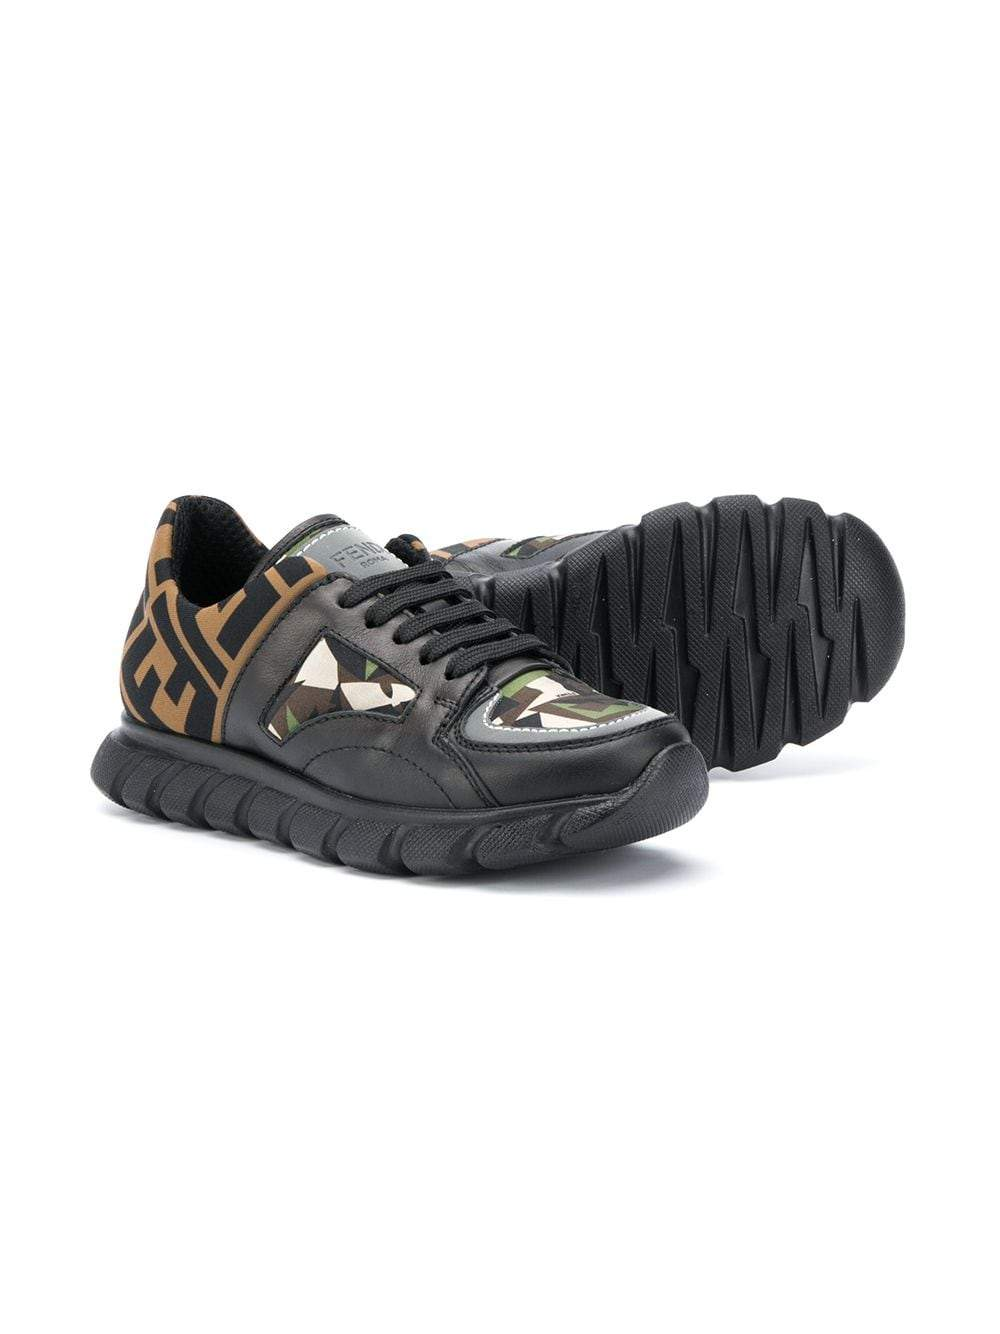 Fendi Kids FF Camouflage Sneakers